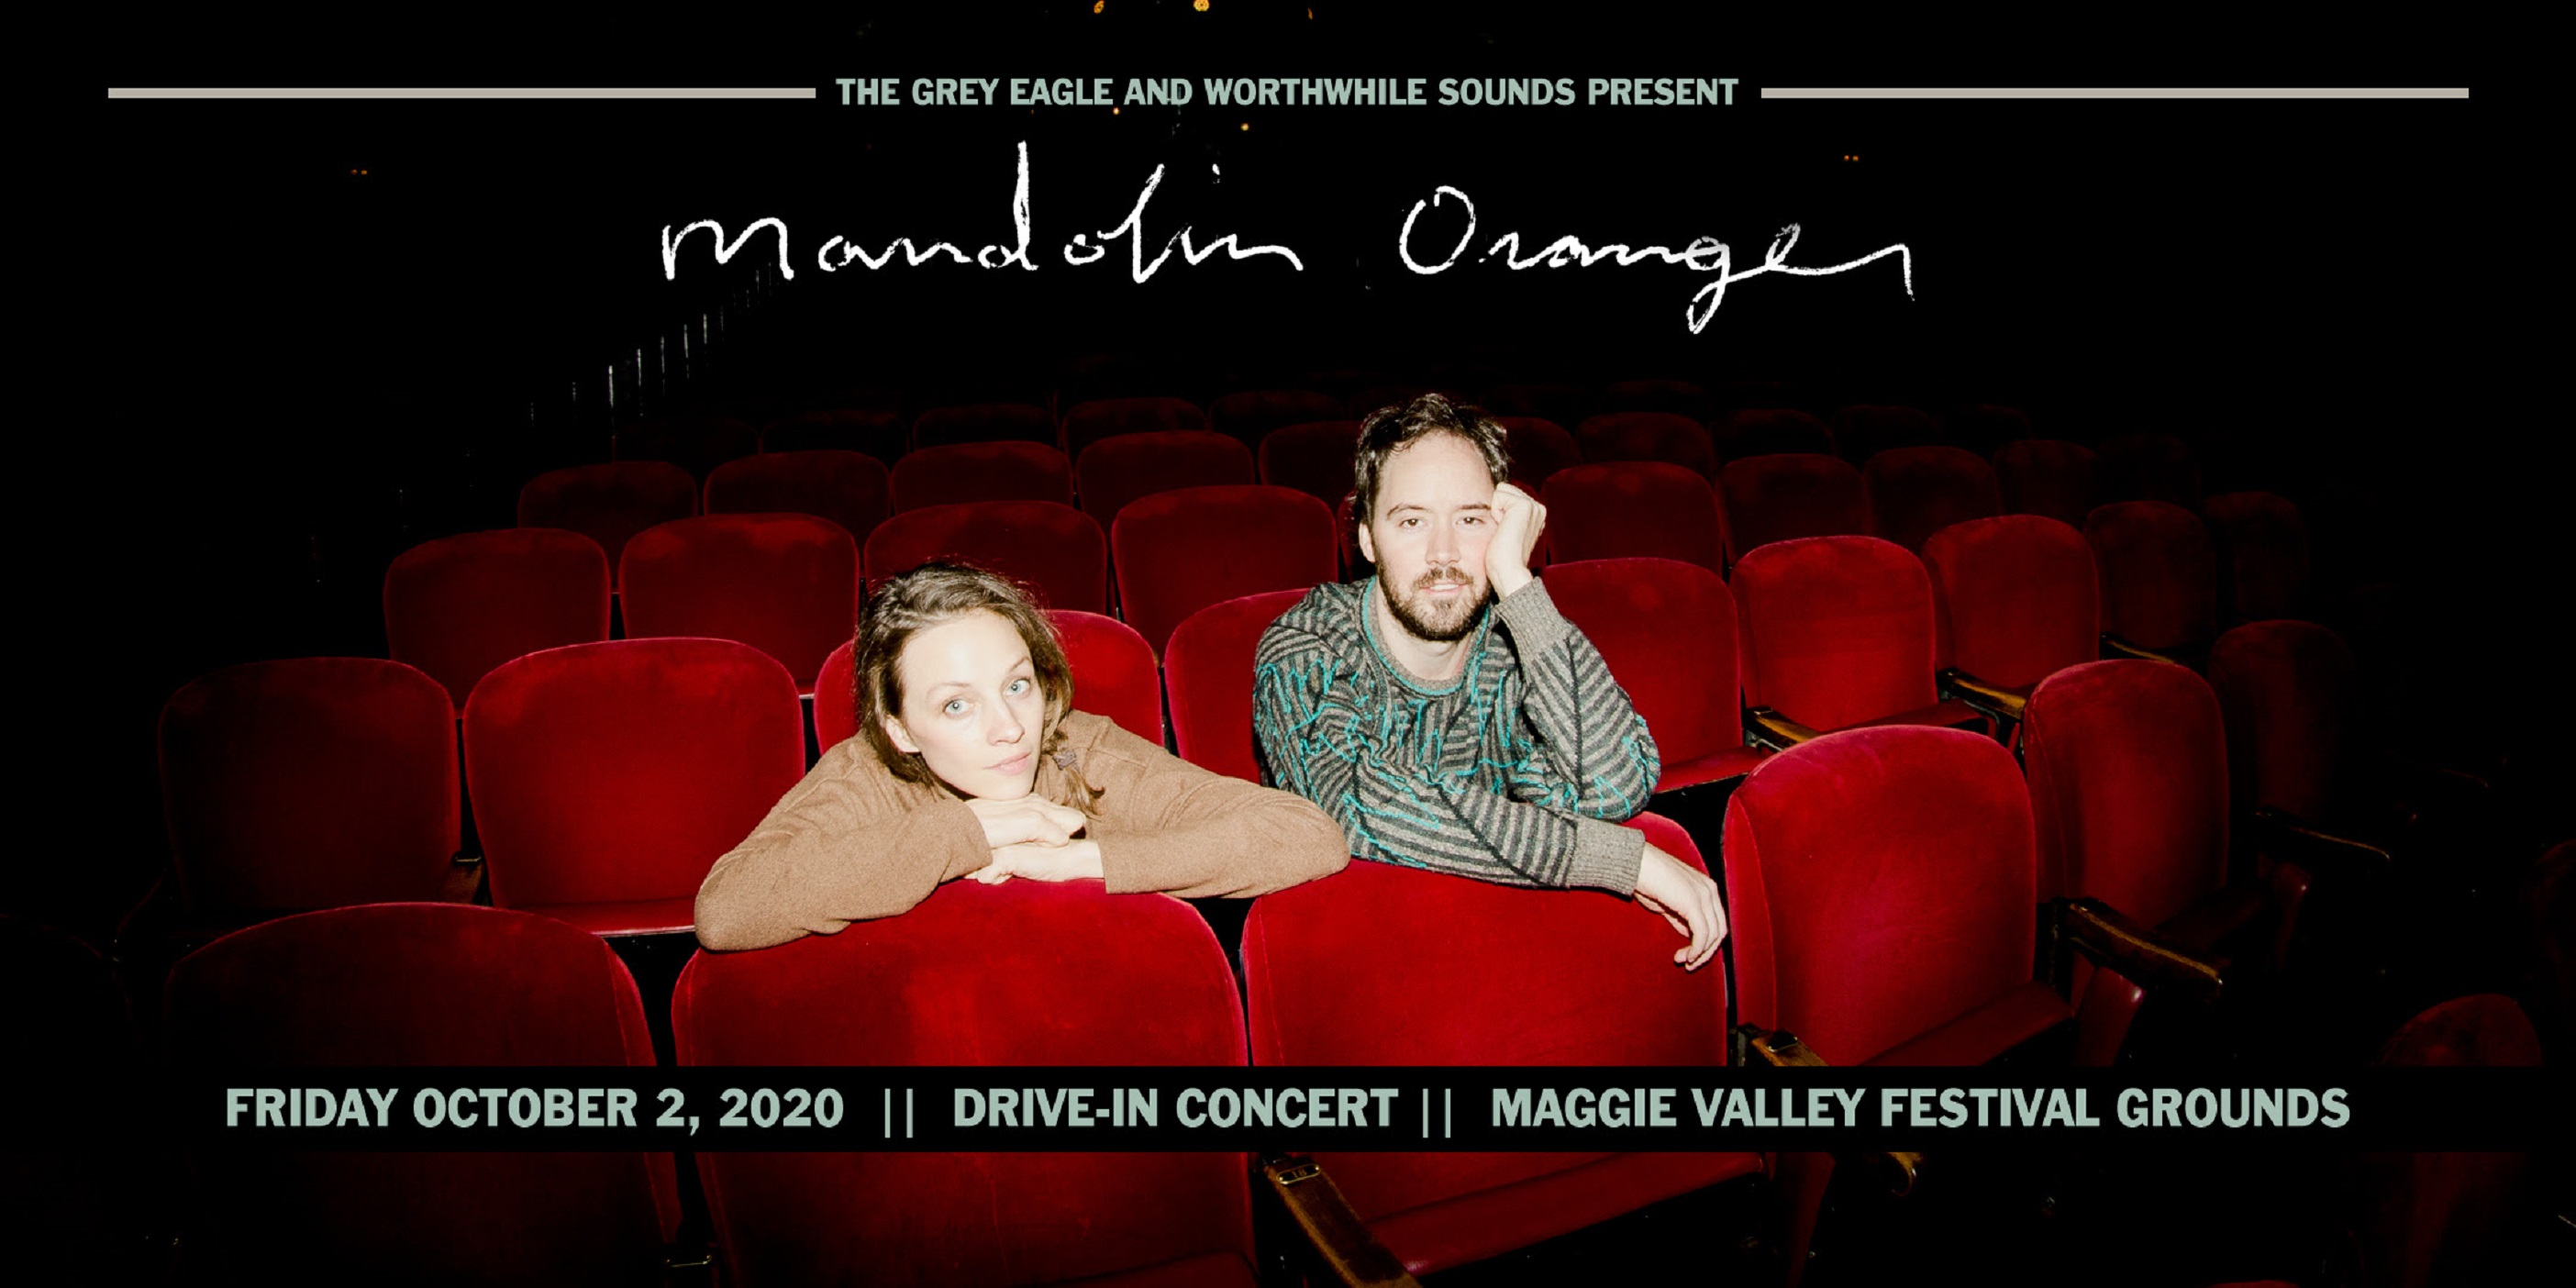 Mandolin Orange Confirm Drive-In Concert at Maggie Valley Festival Grounds